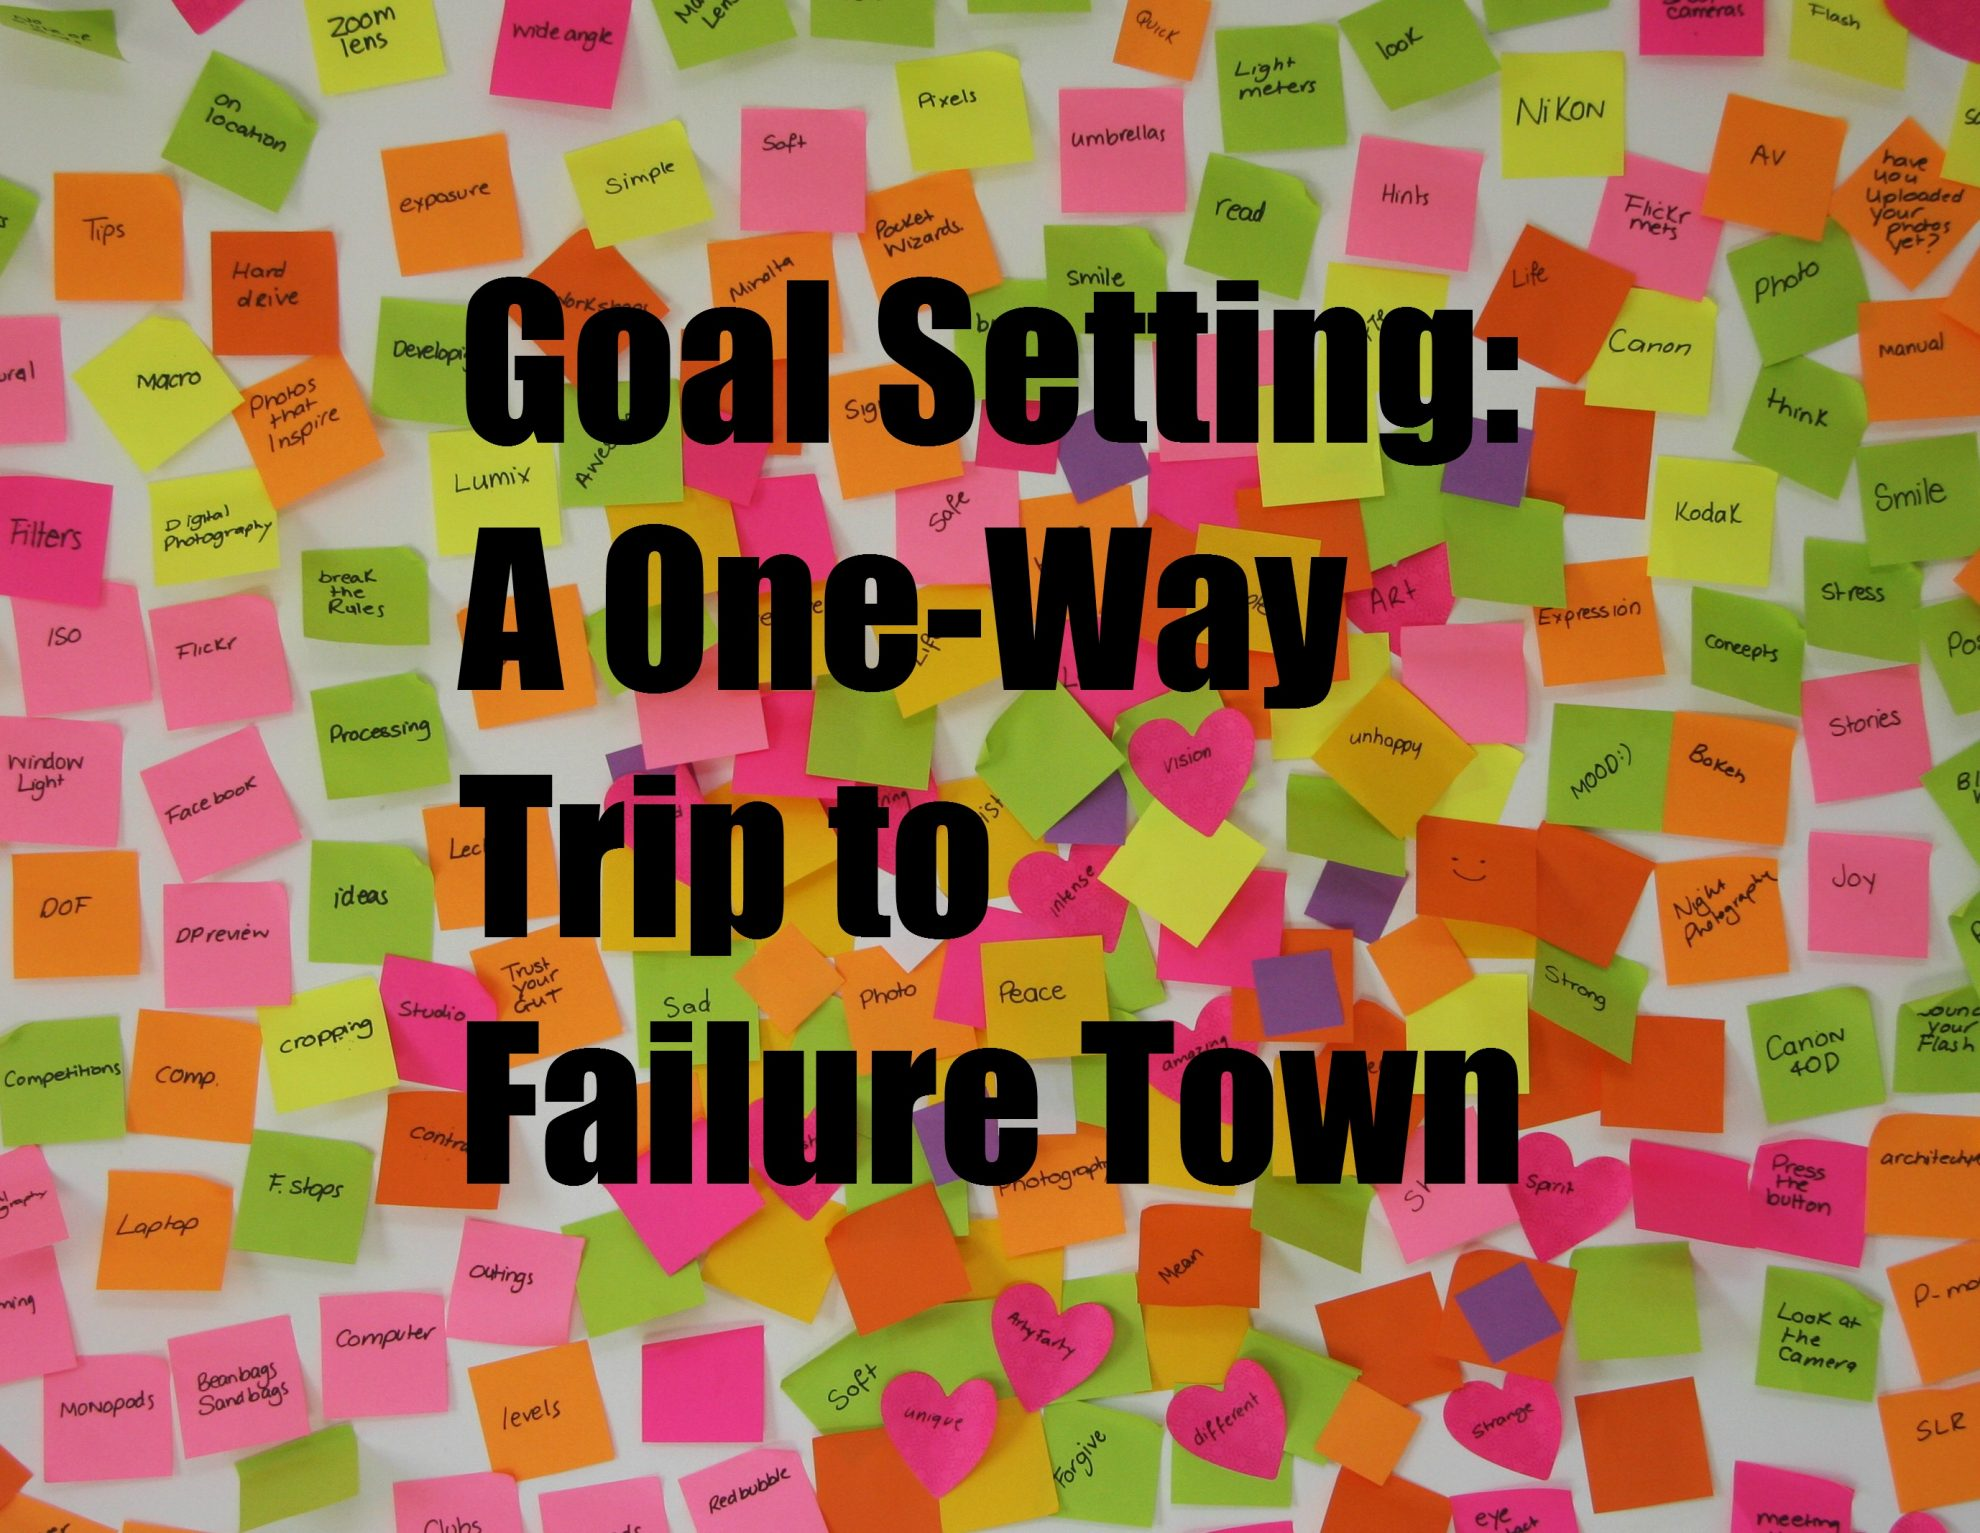 Goal Setting is a One Way Trip to Failure Town